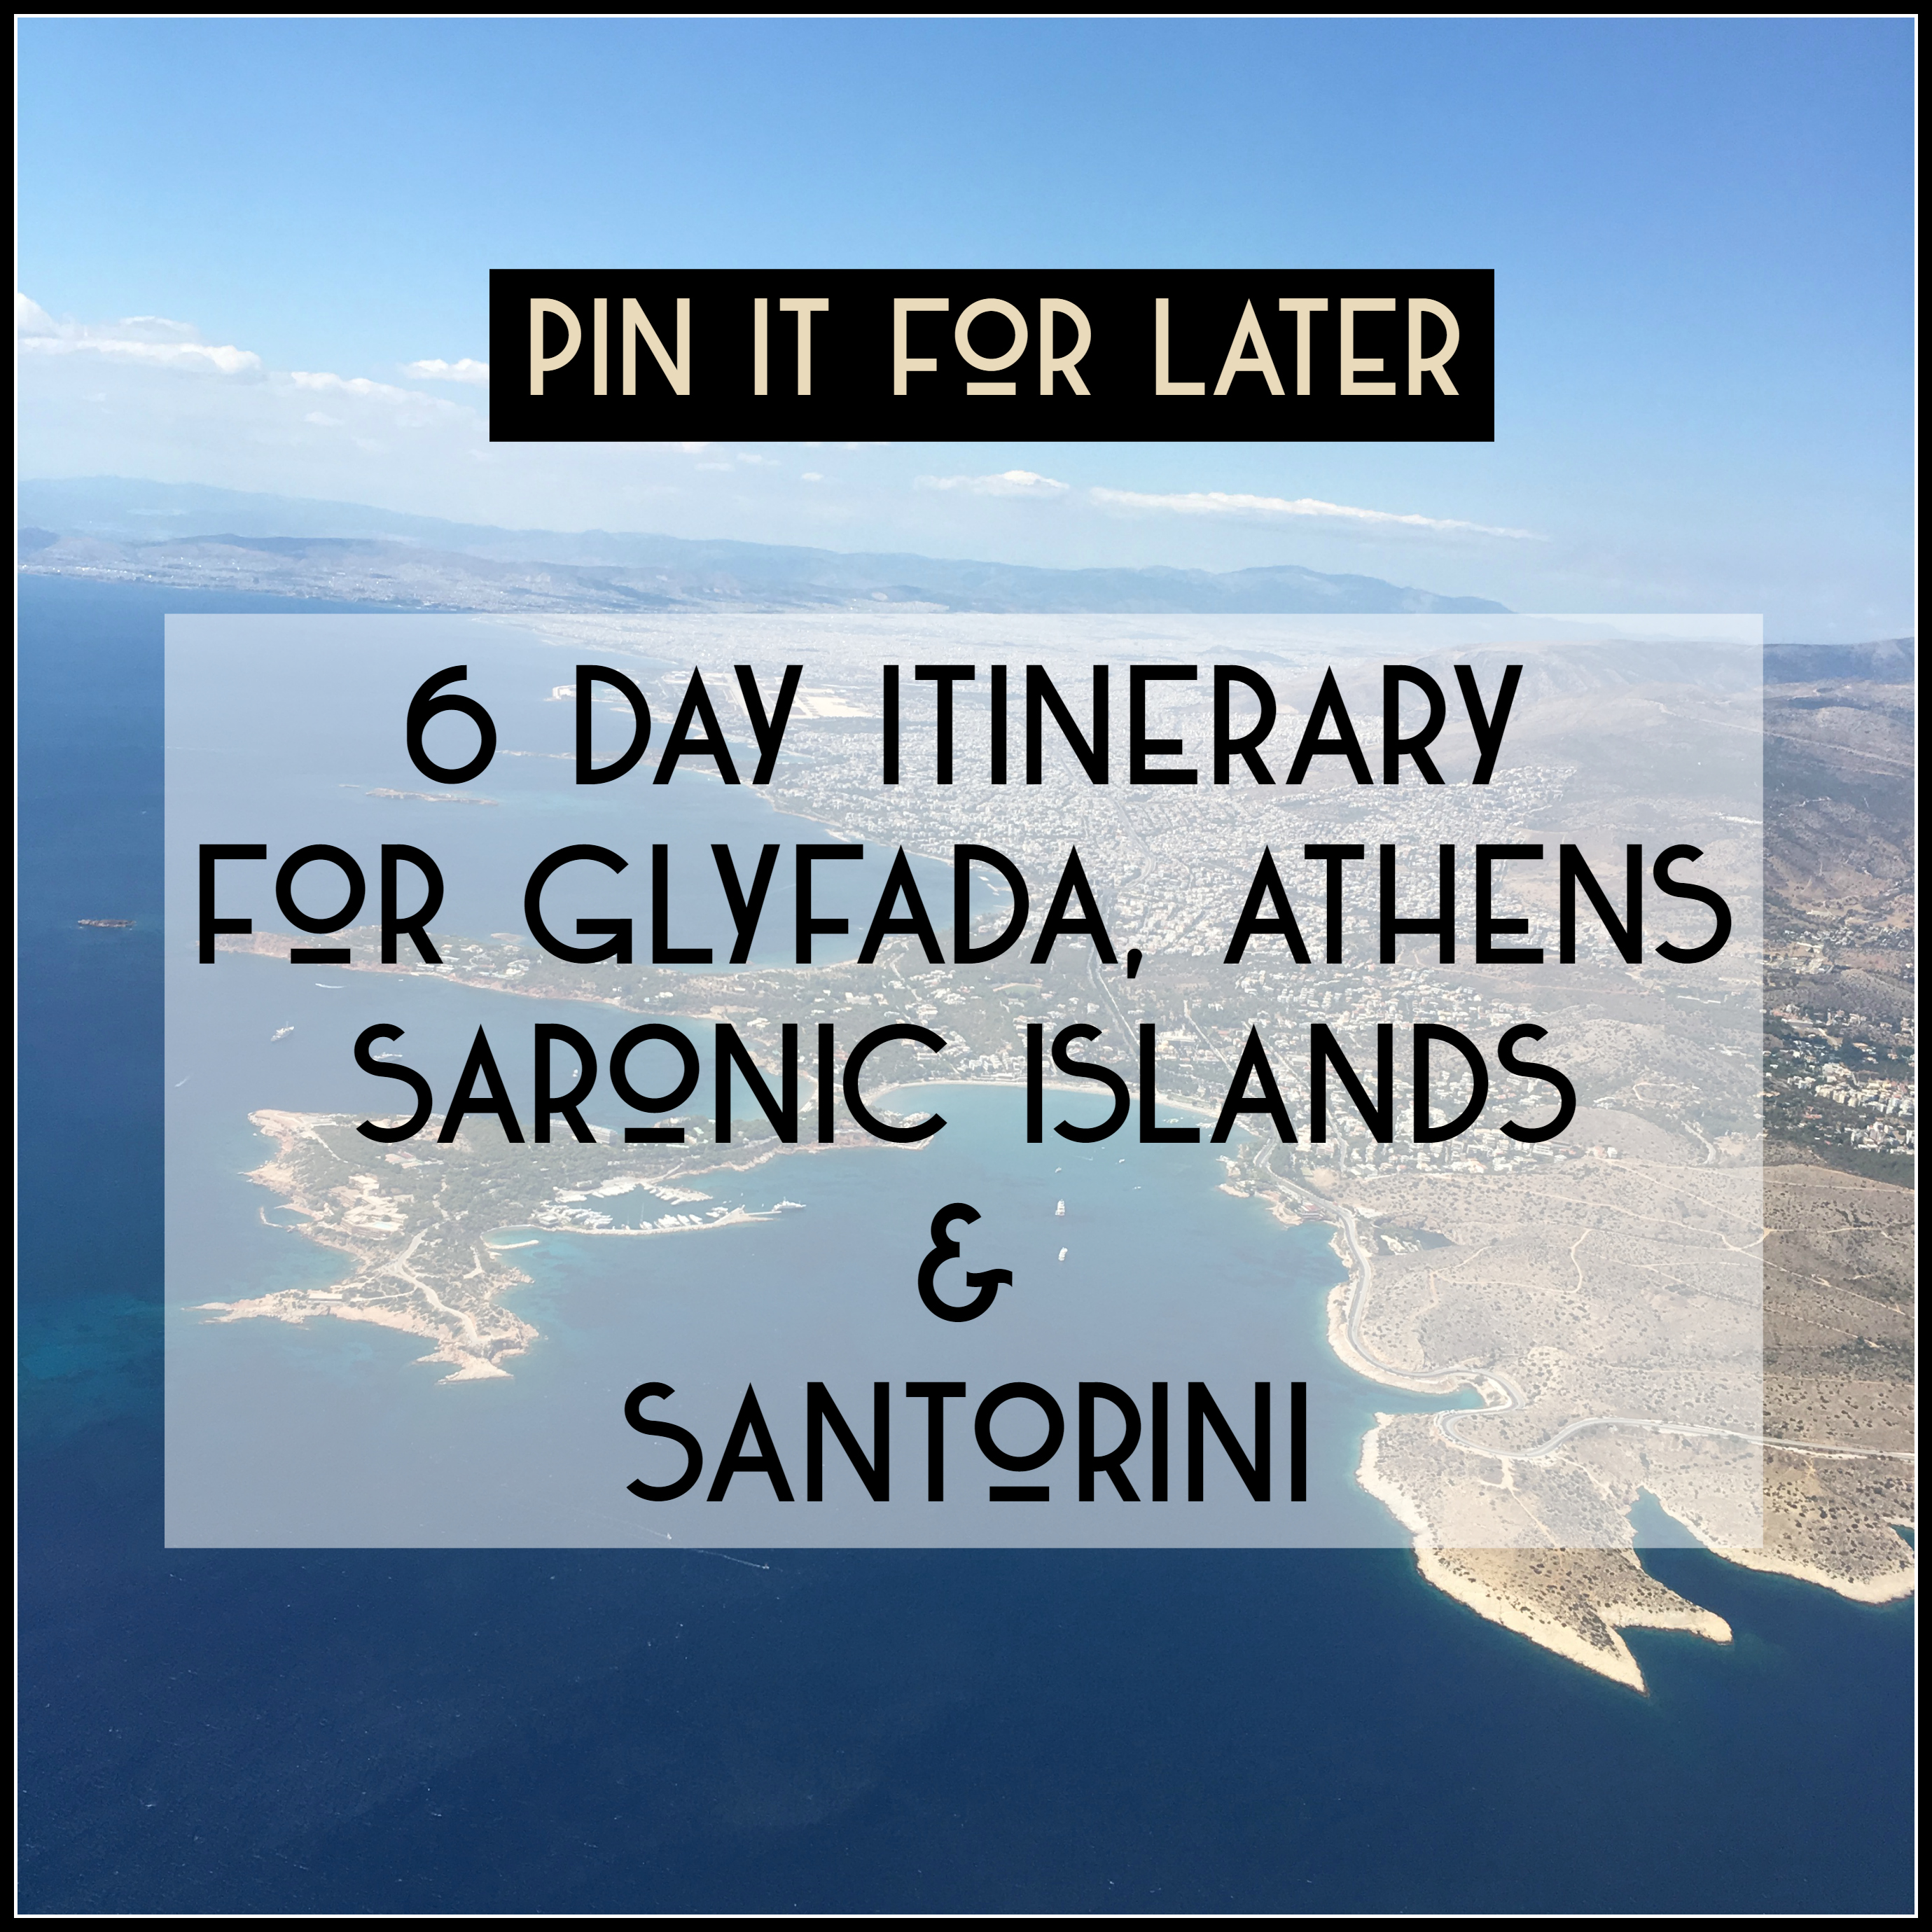 6 Day Itinerary for Glyfada, Athens, Saronic Islands and Santorini